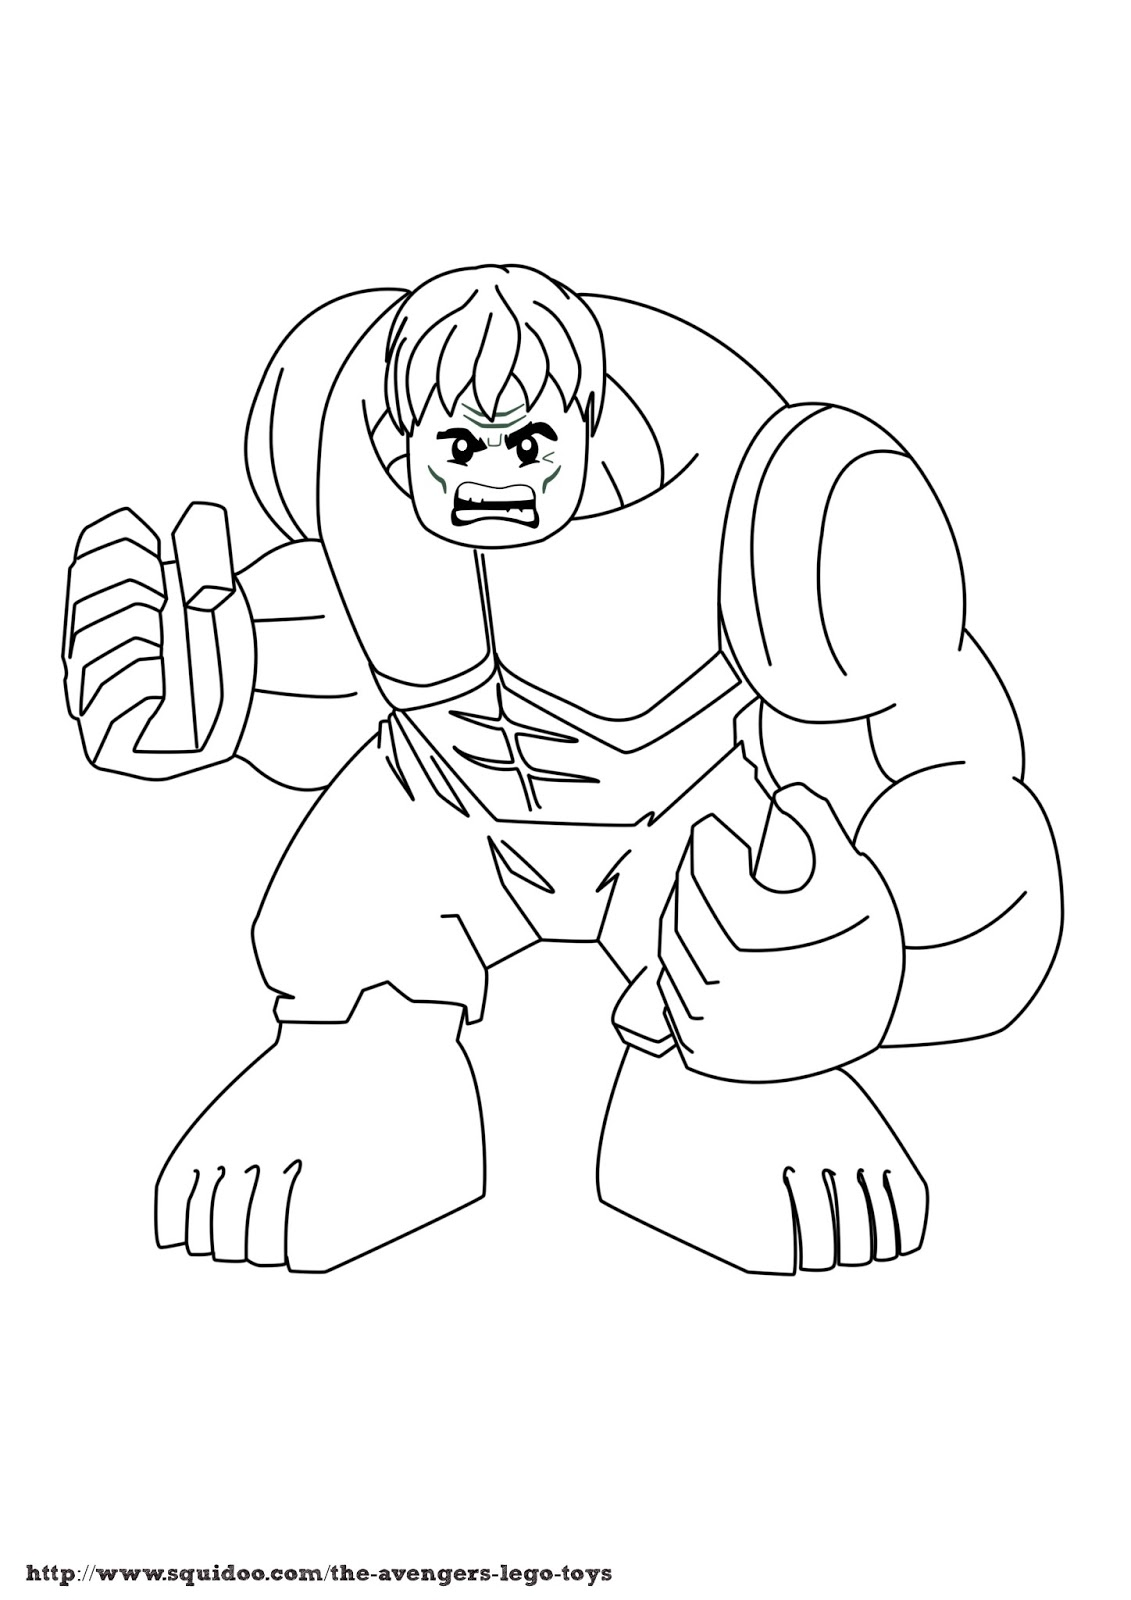 lego avengers coloring pages - photo #5